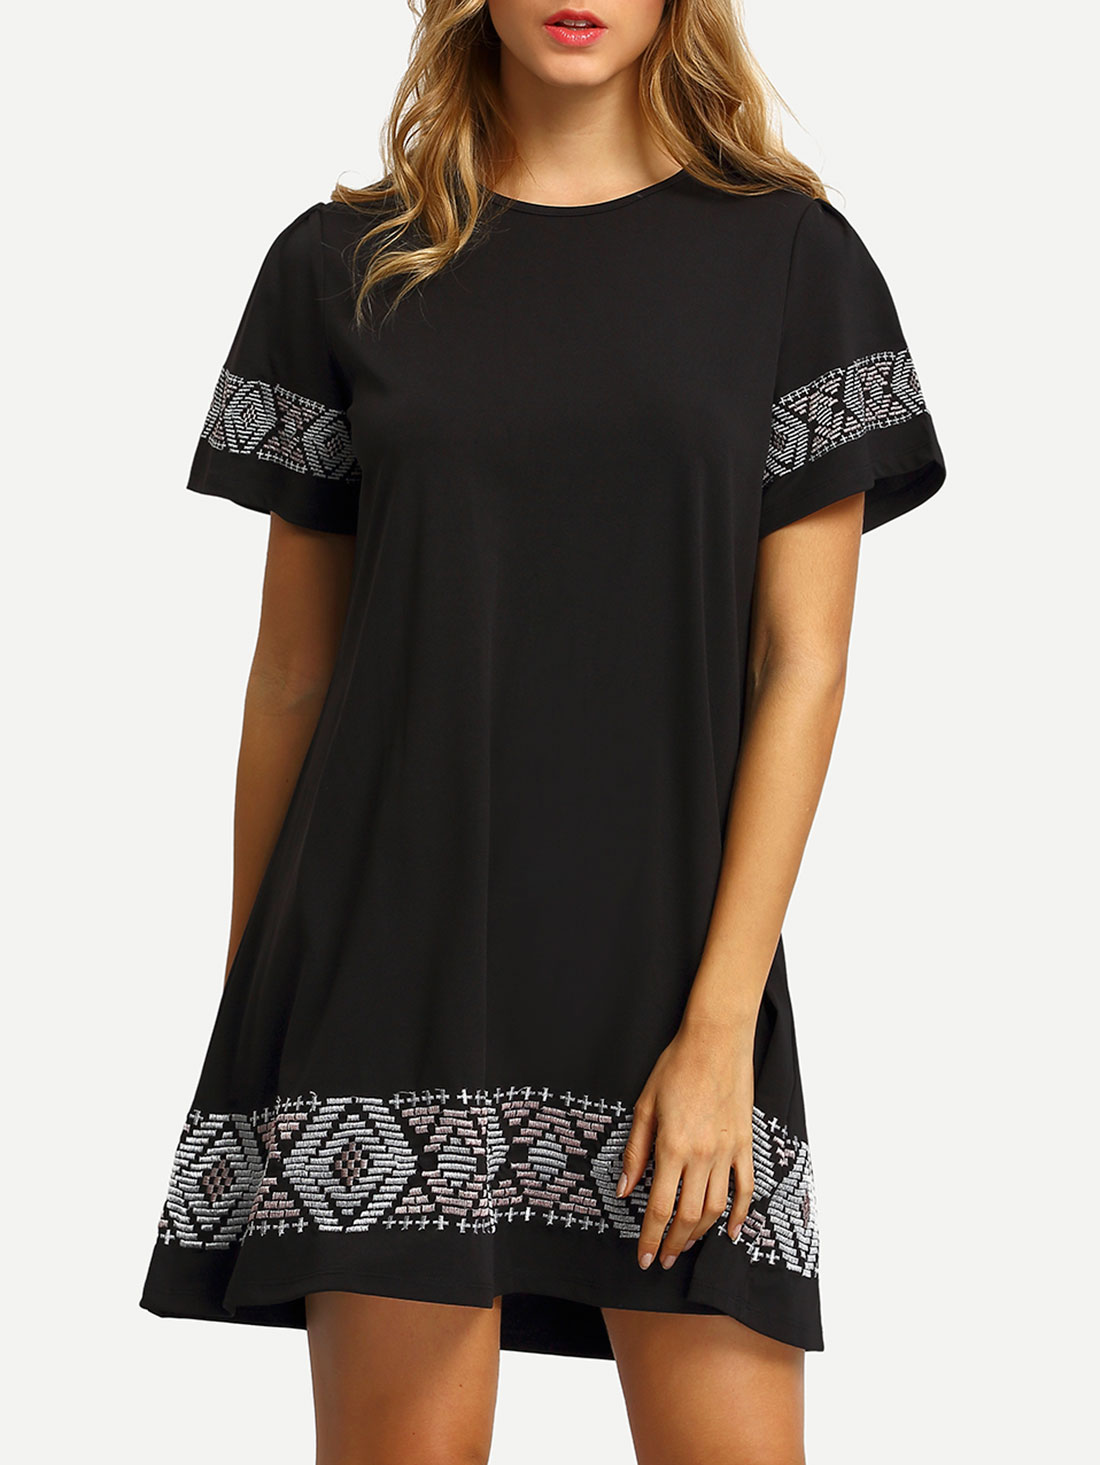 Black Short Sleeve Embroidered A-line Dress — 0.00 € ------------color: Black size: L,M,S,XL,XS